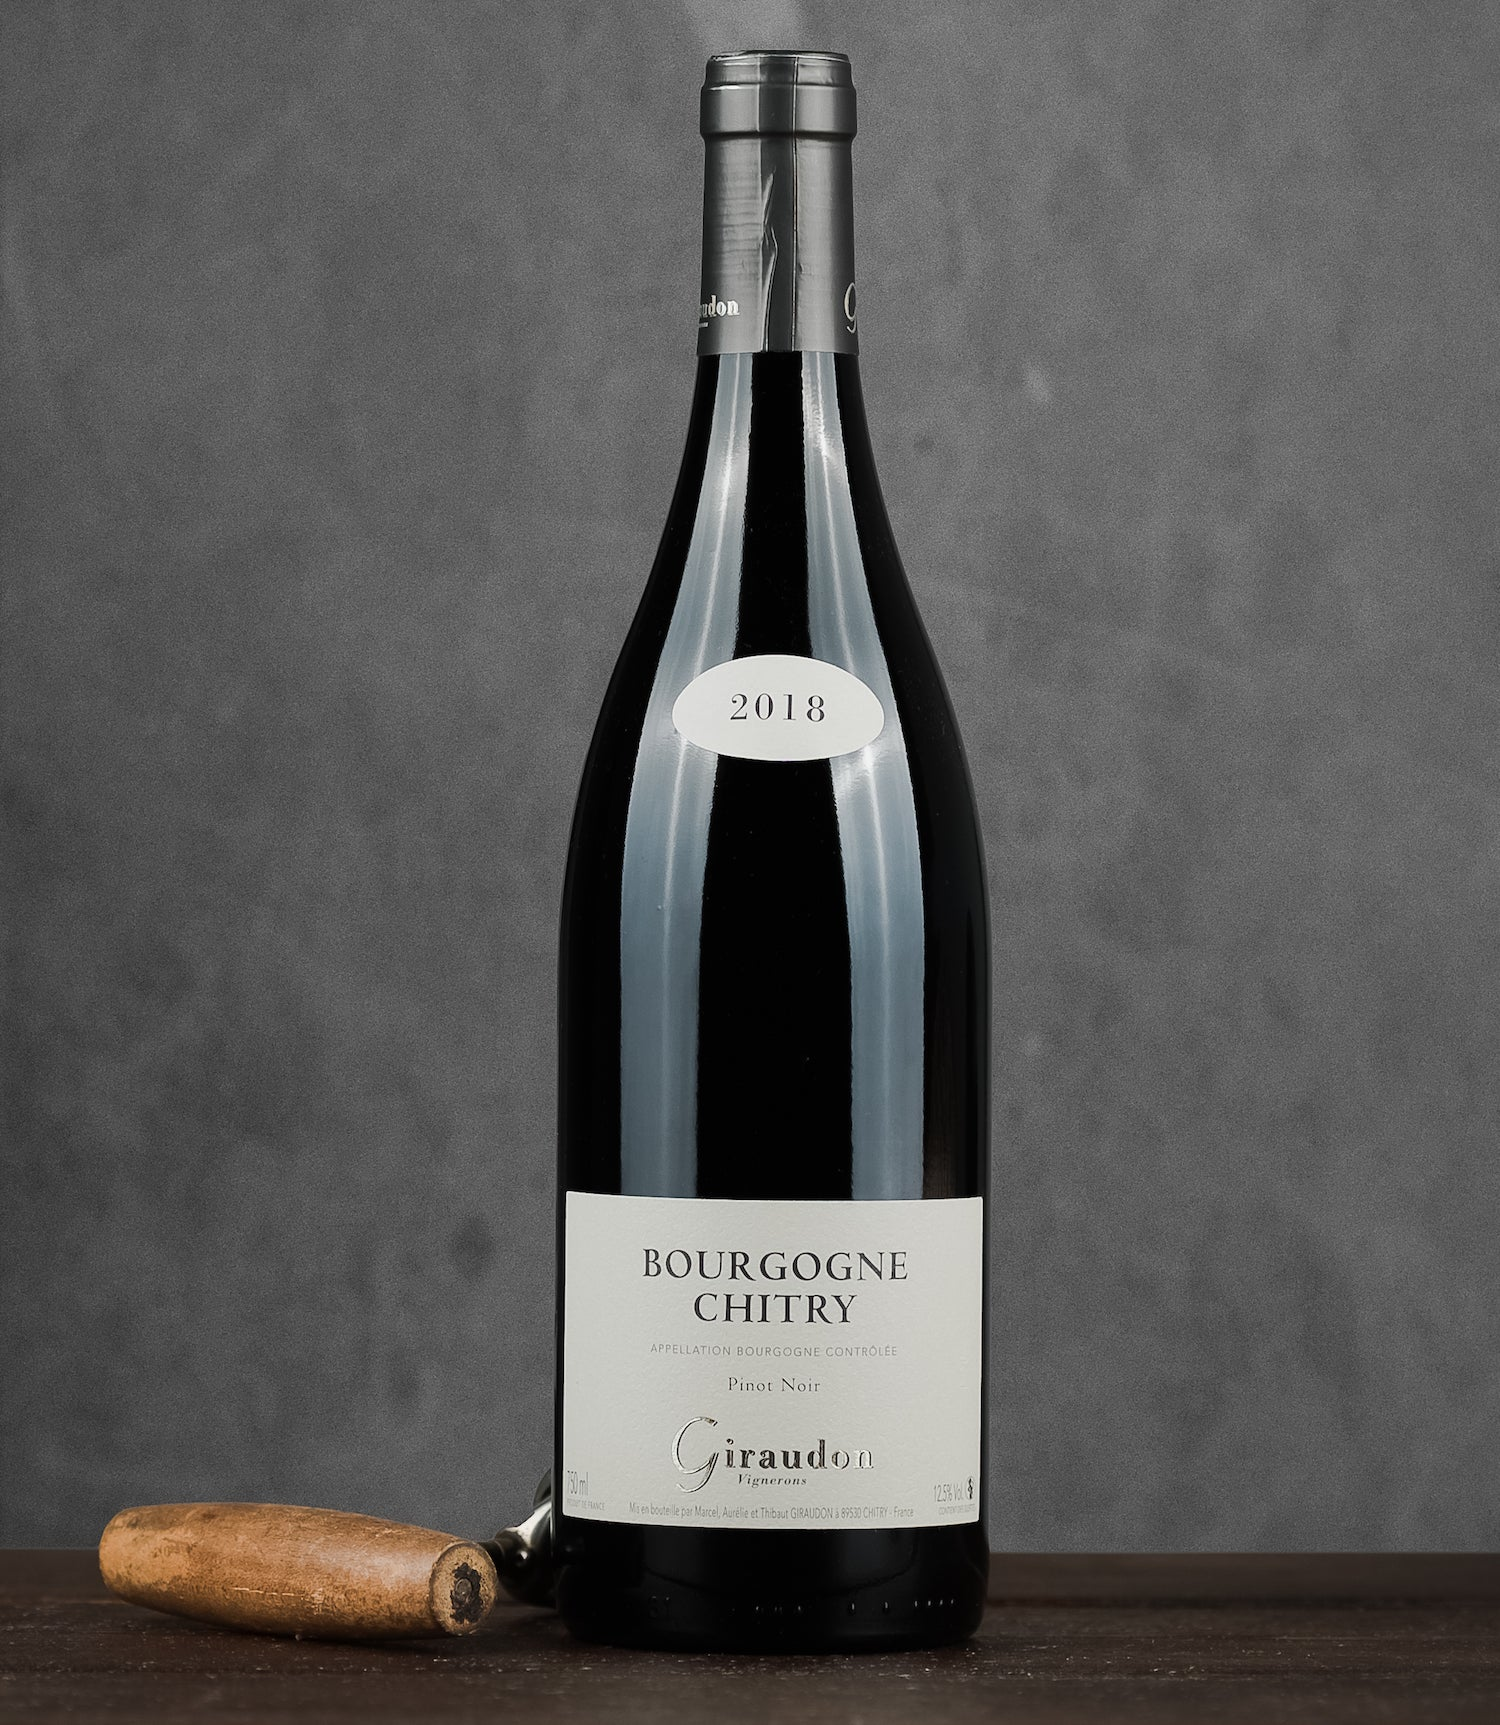 Domaine Giraudon Bourgogne Chitry 2018 - Cellar Direct